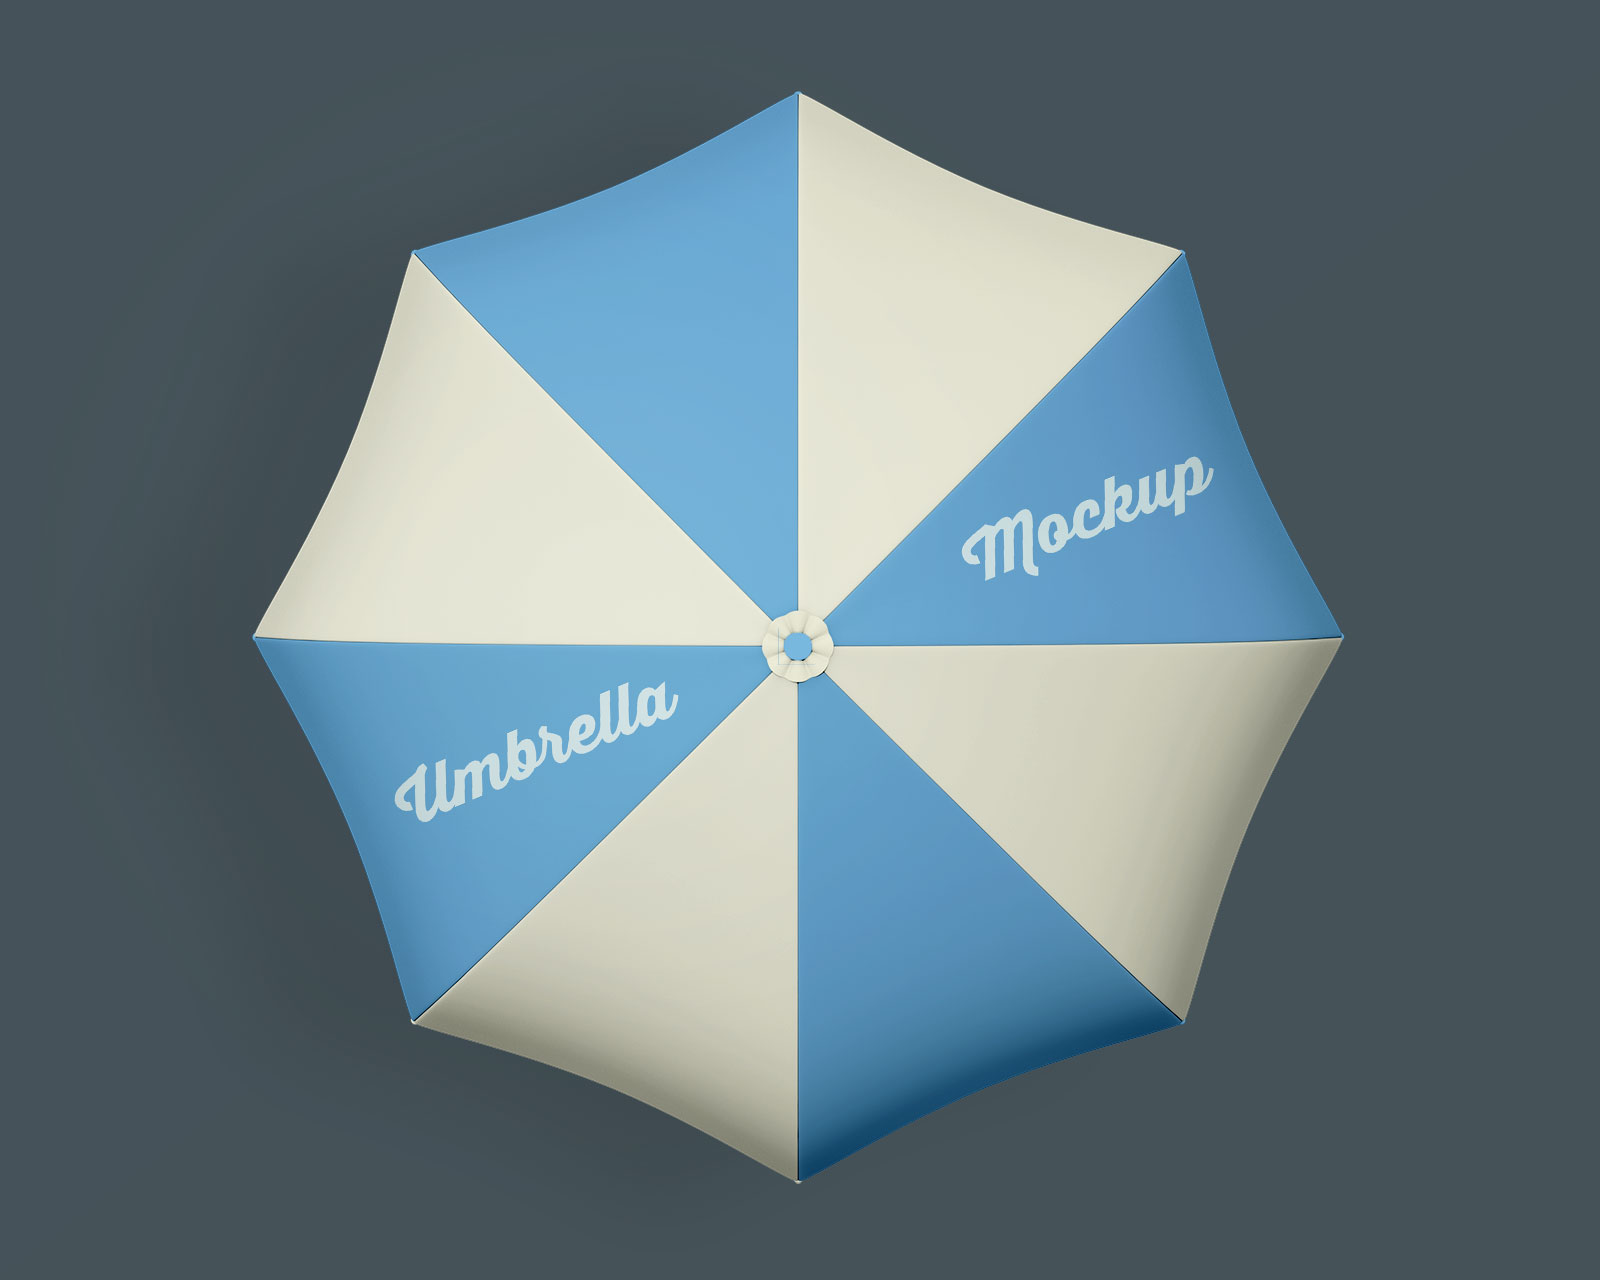 Free-Umbrella-Mockup-PSD-Set-2